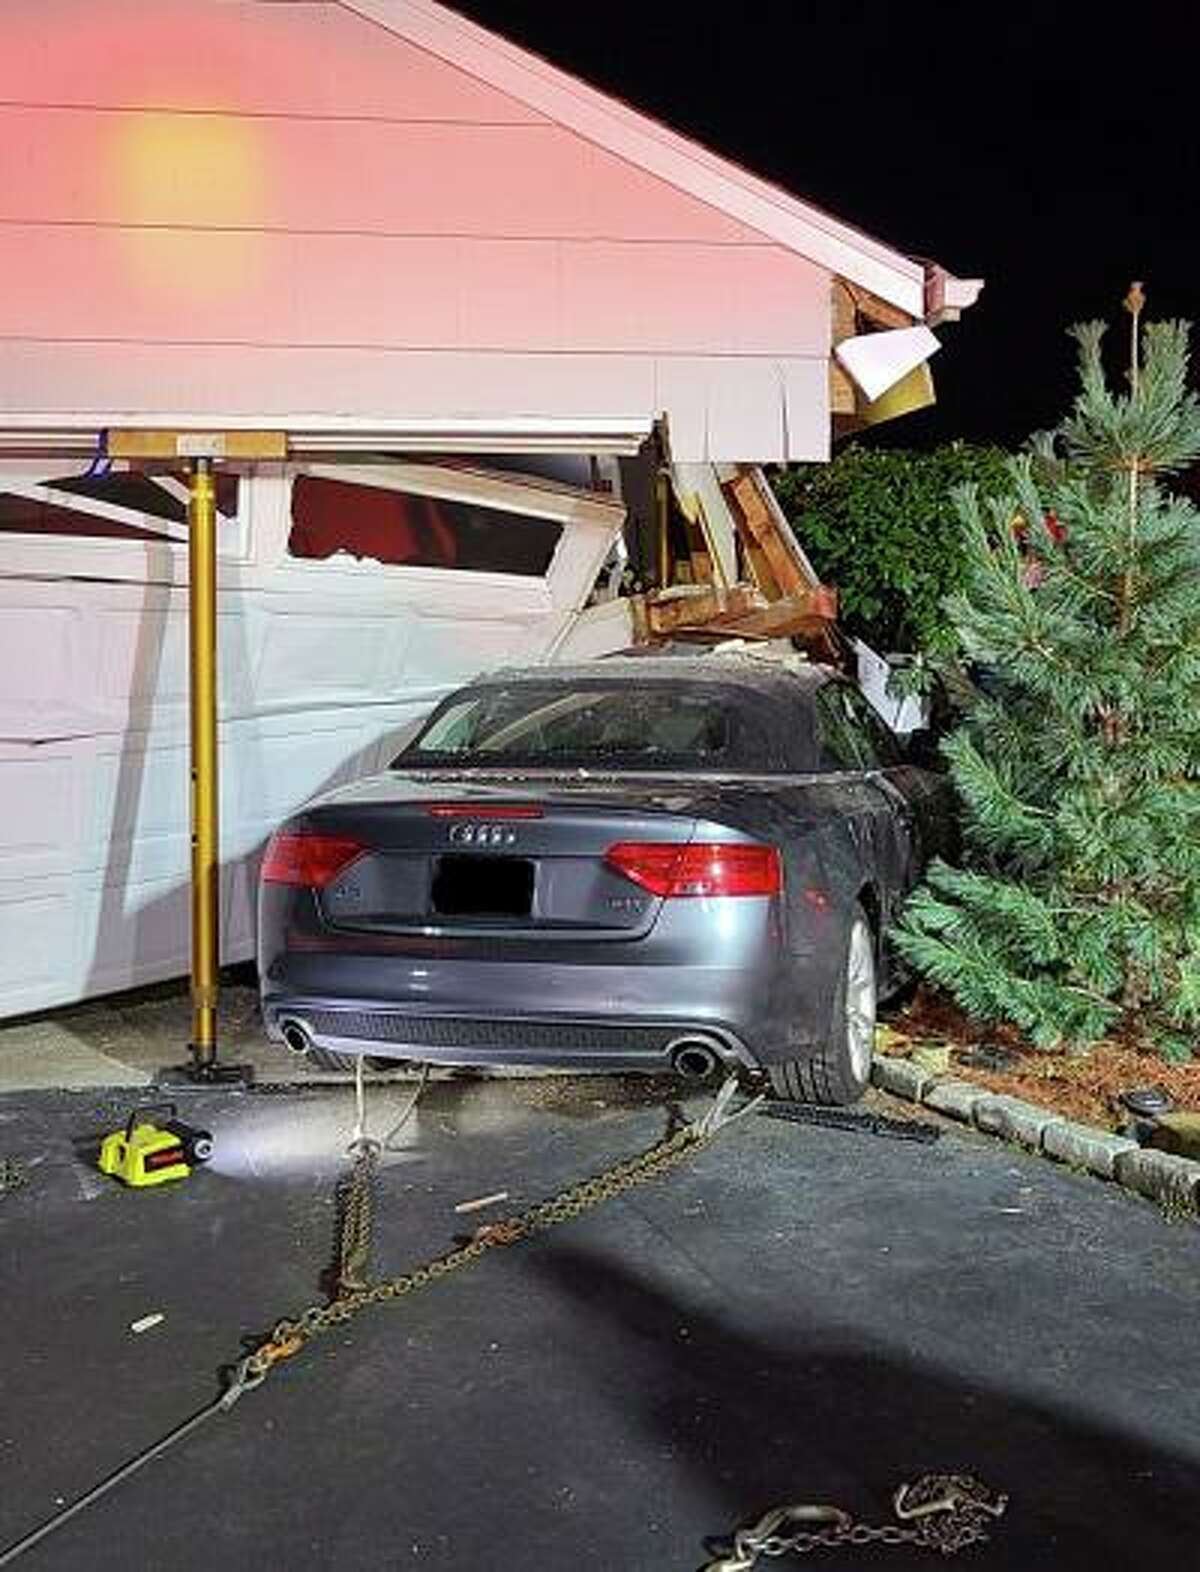 A vehicle slammed into a garage attached to a home in North Stamford.